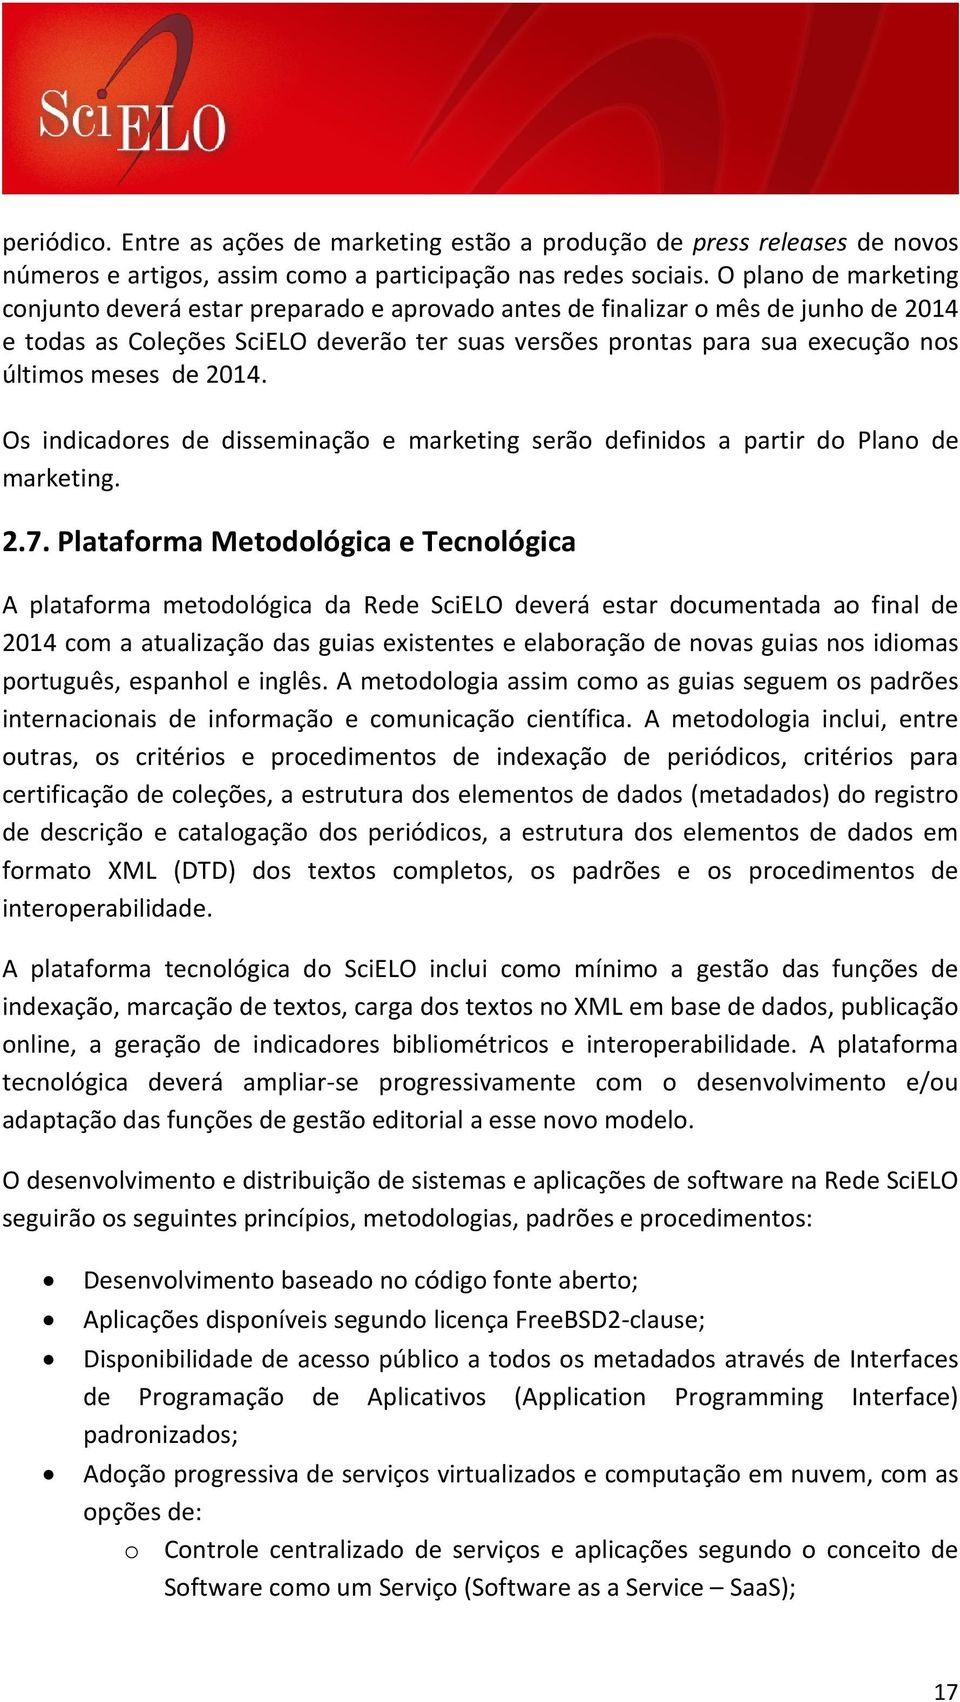 meses de 2014. Os indicadores de disseminação e marketing serão definidos a partir do Plano de marketing. 2.7.